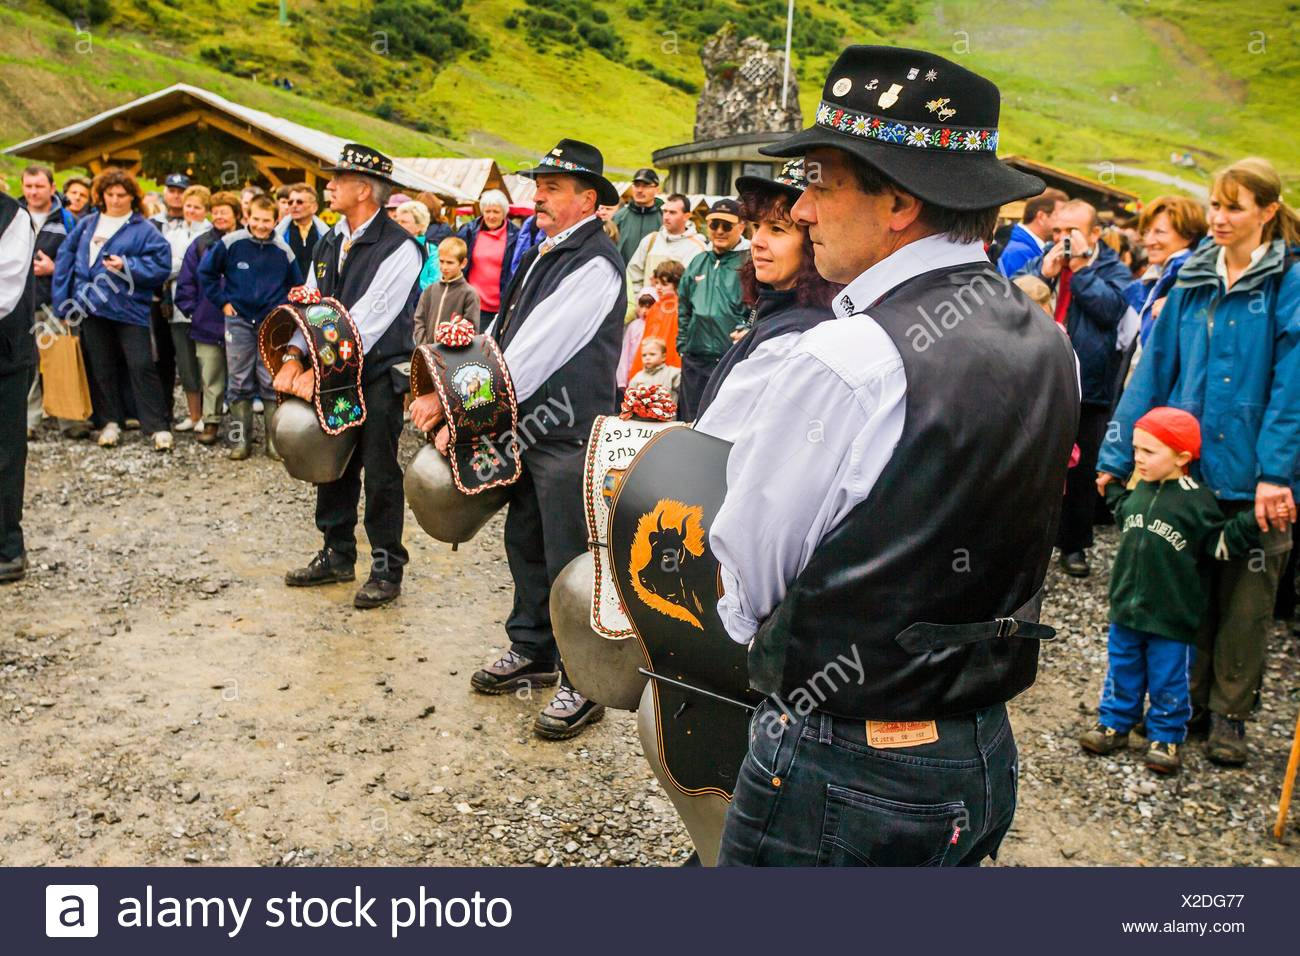 France, Rhone-Alpes, Chatel. La Belle Dimanche, traditional folk festival. Bell players - Stock Image